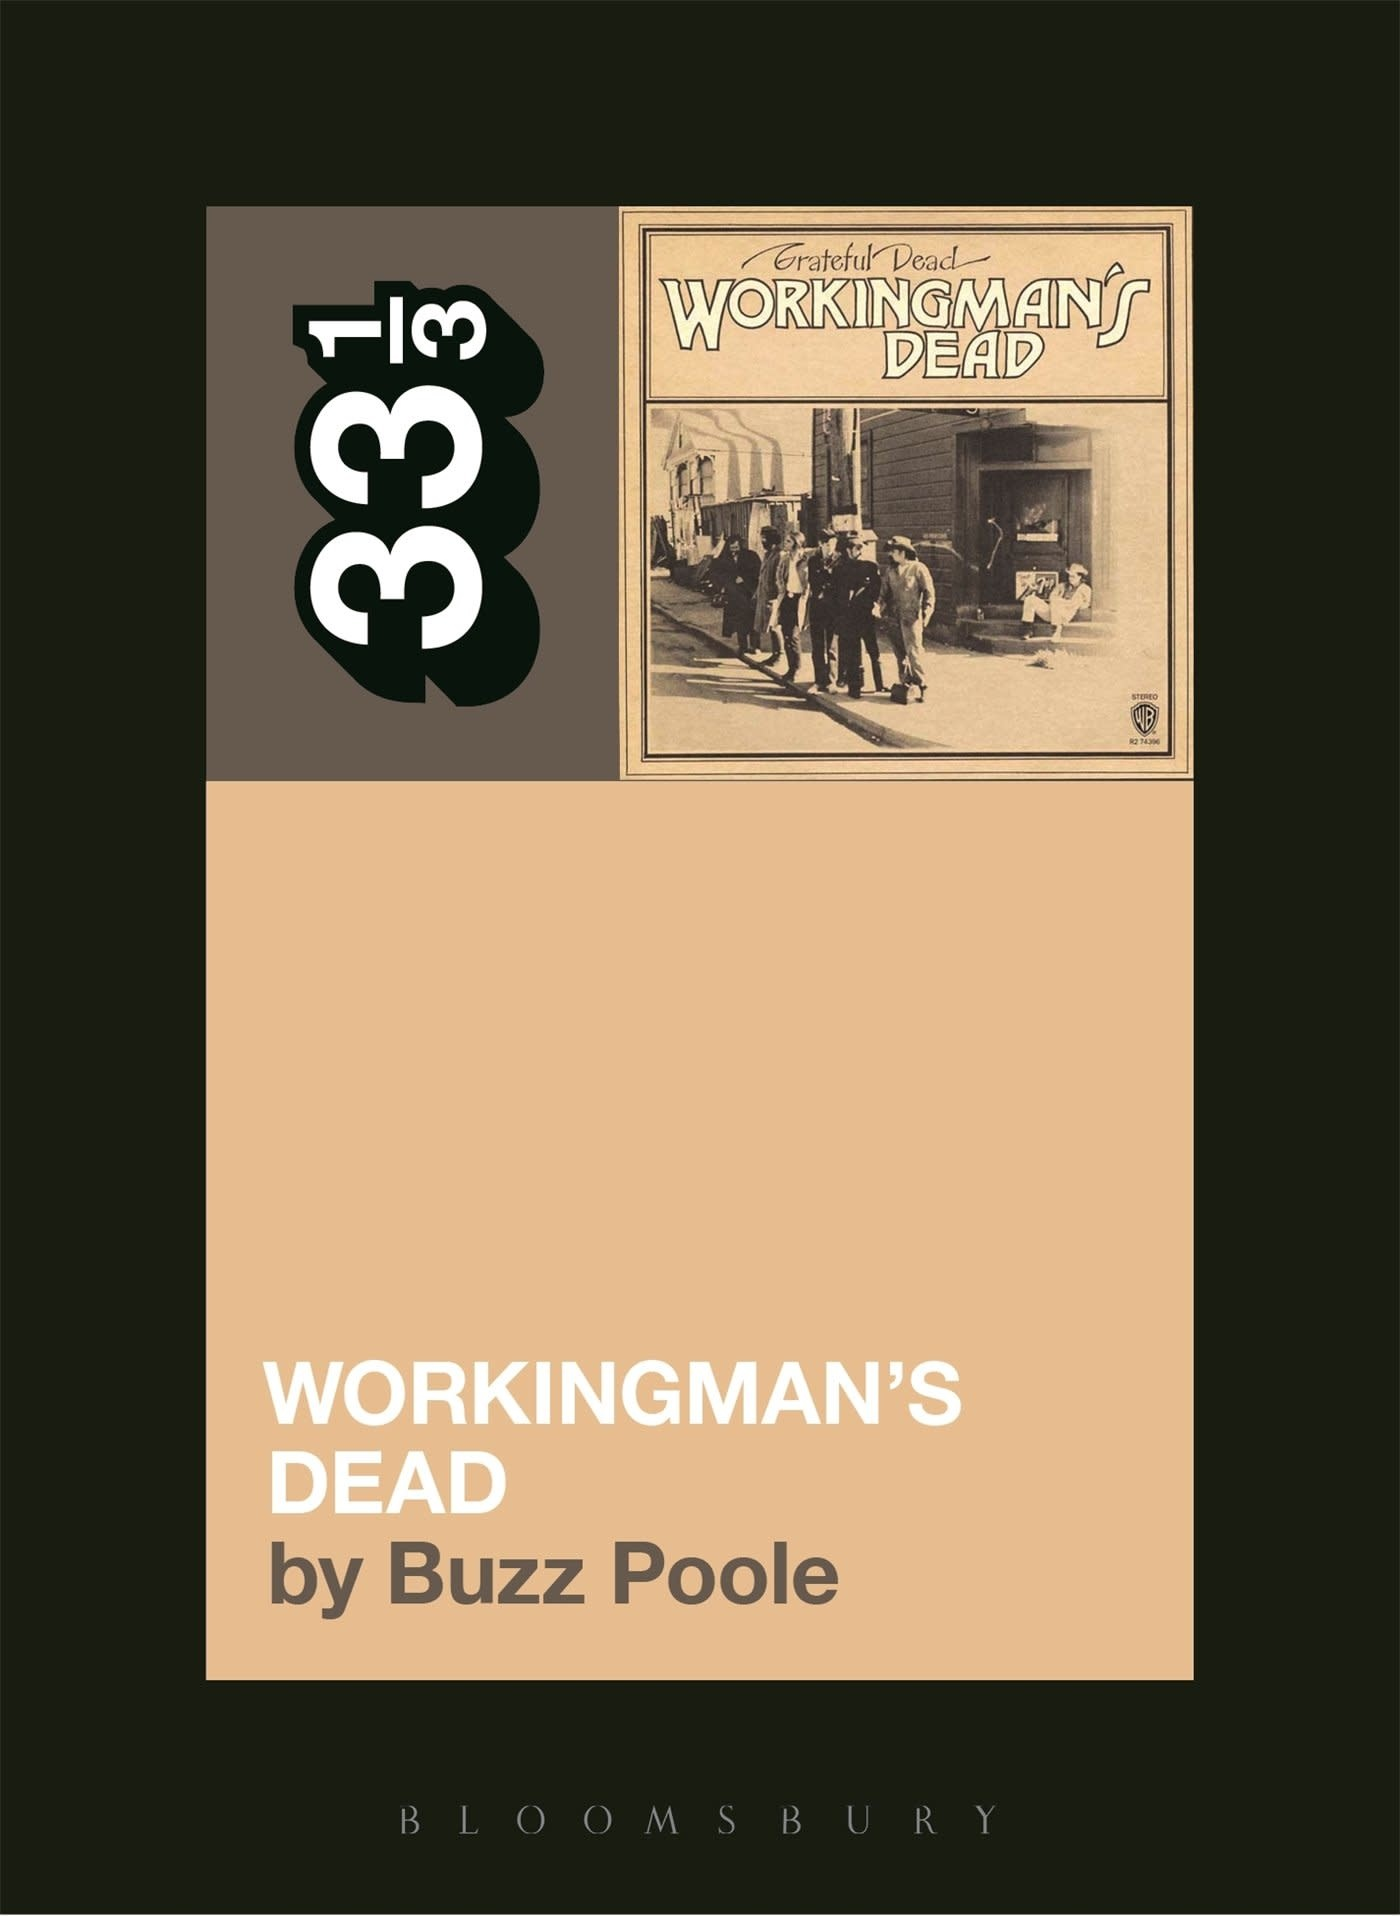 33 1/3 Series 33 1/3 - #112 - Grateful Dead's Workingman's Dead - Buzz Poole